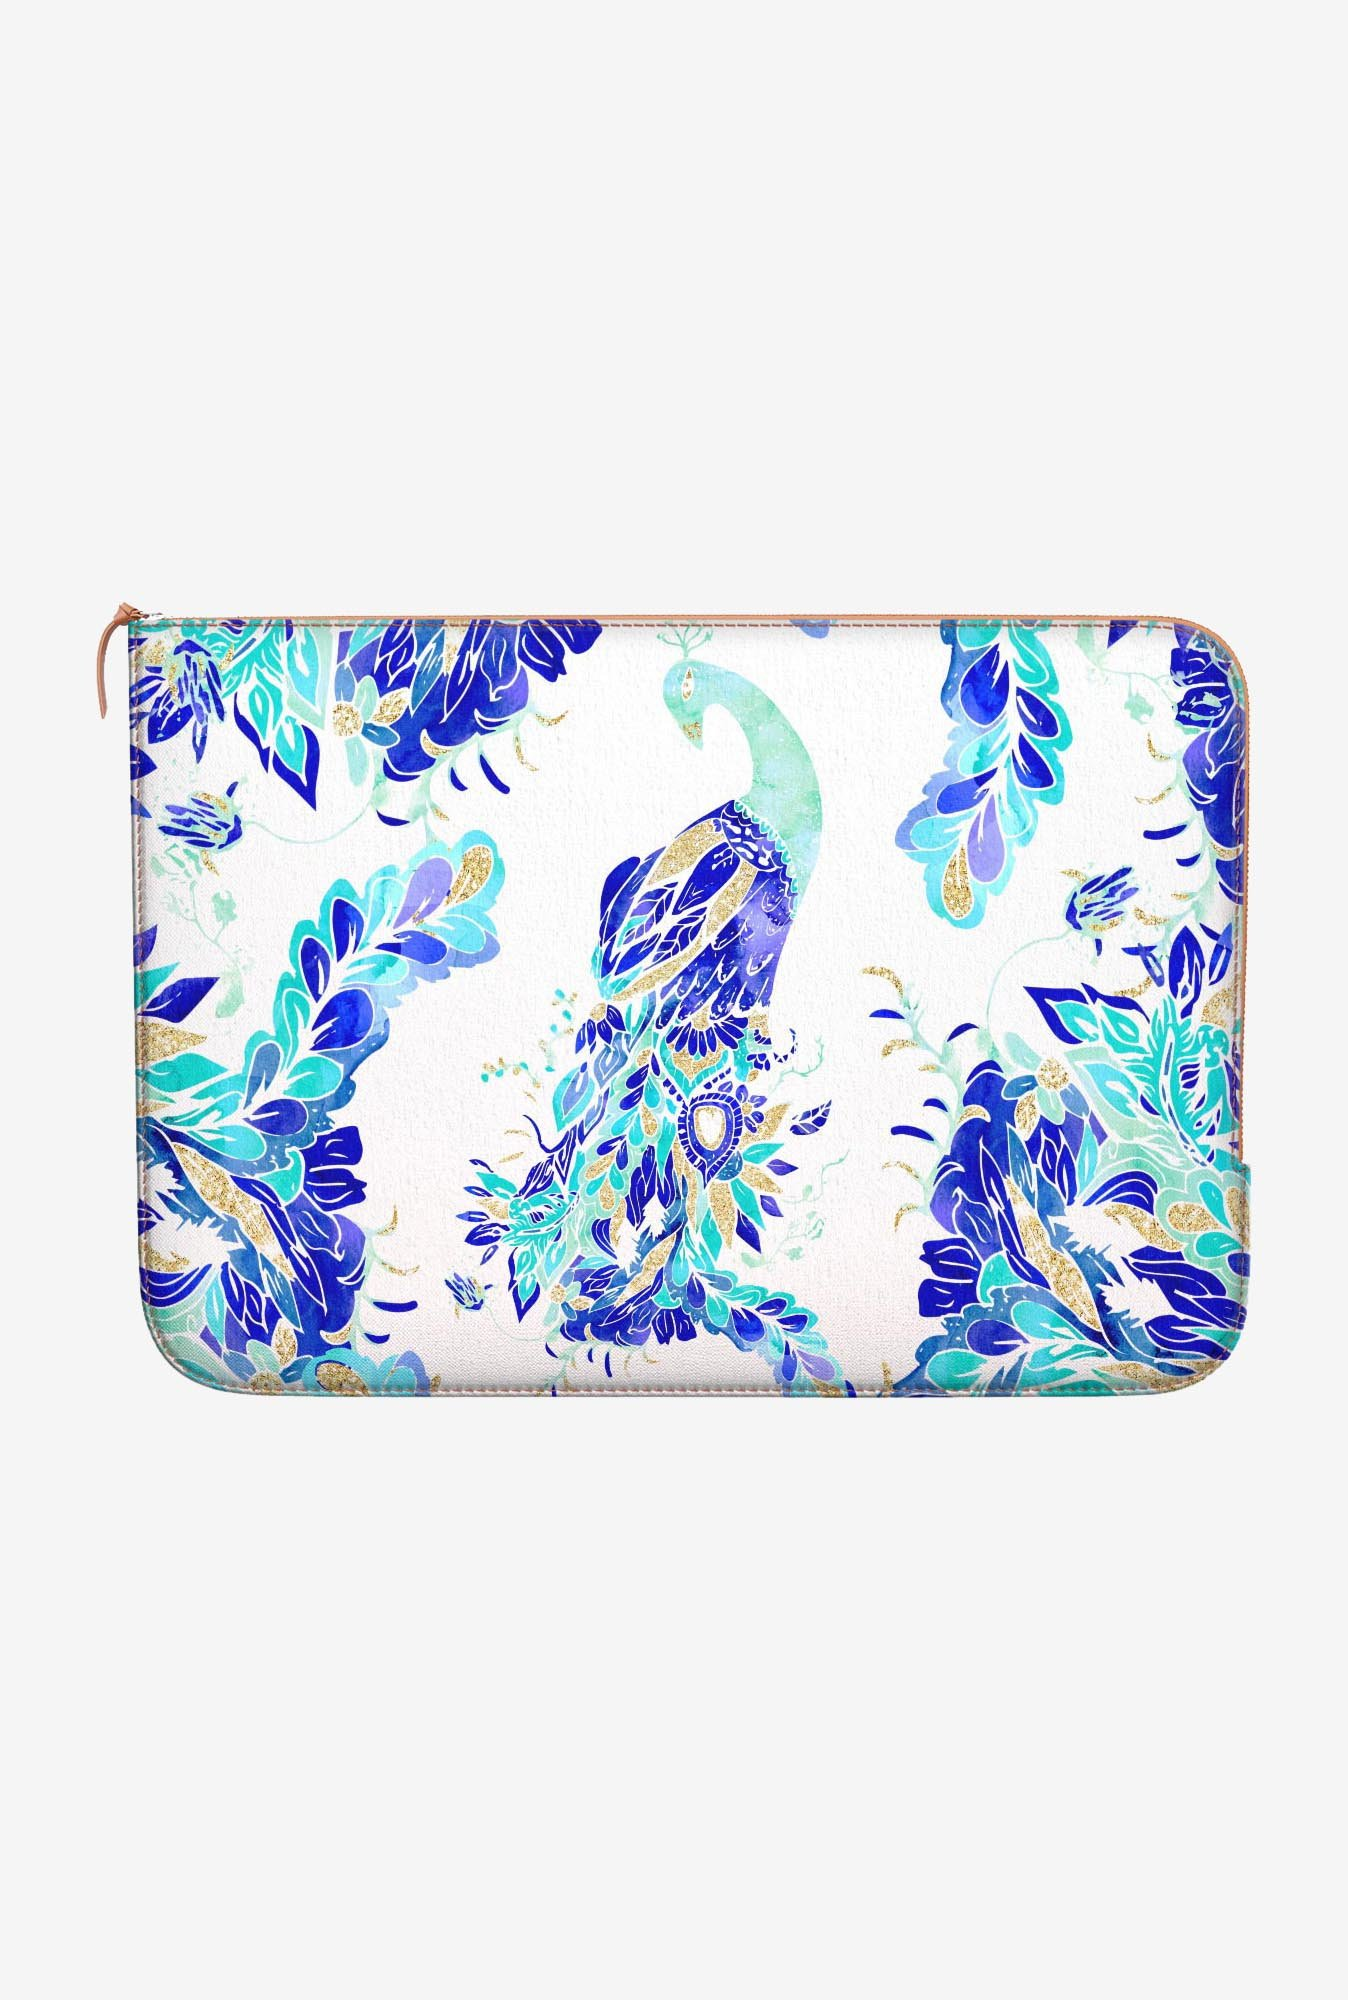 DailyObjects Blue Peacock MacBook 12 Zippered Sleeve